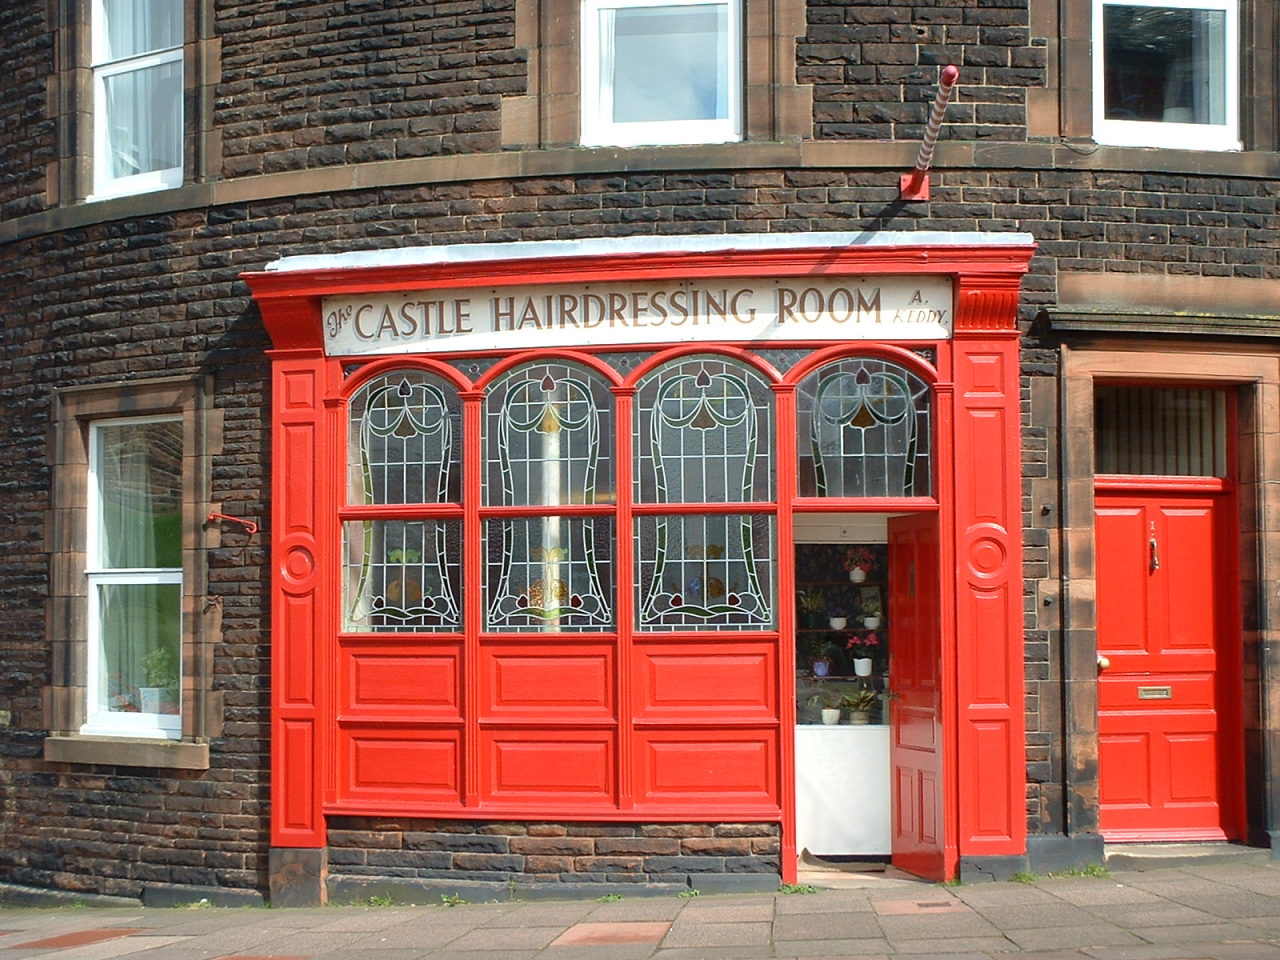 The Castle Hairdressing Room, Carlisle